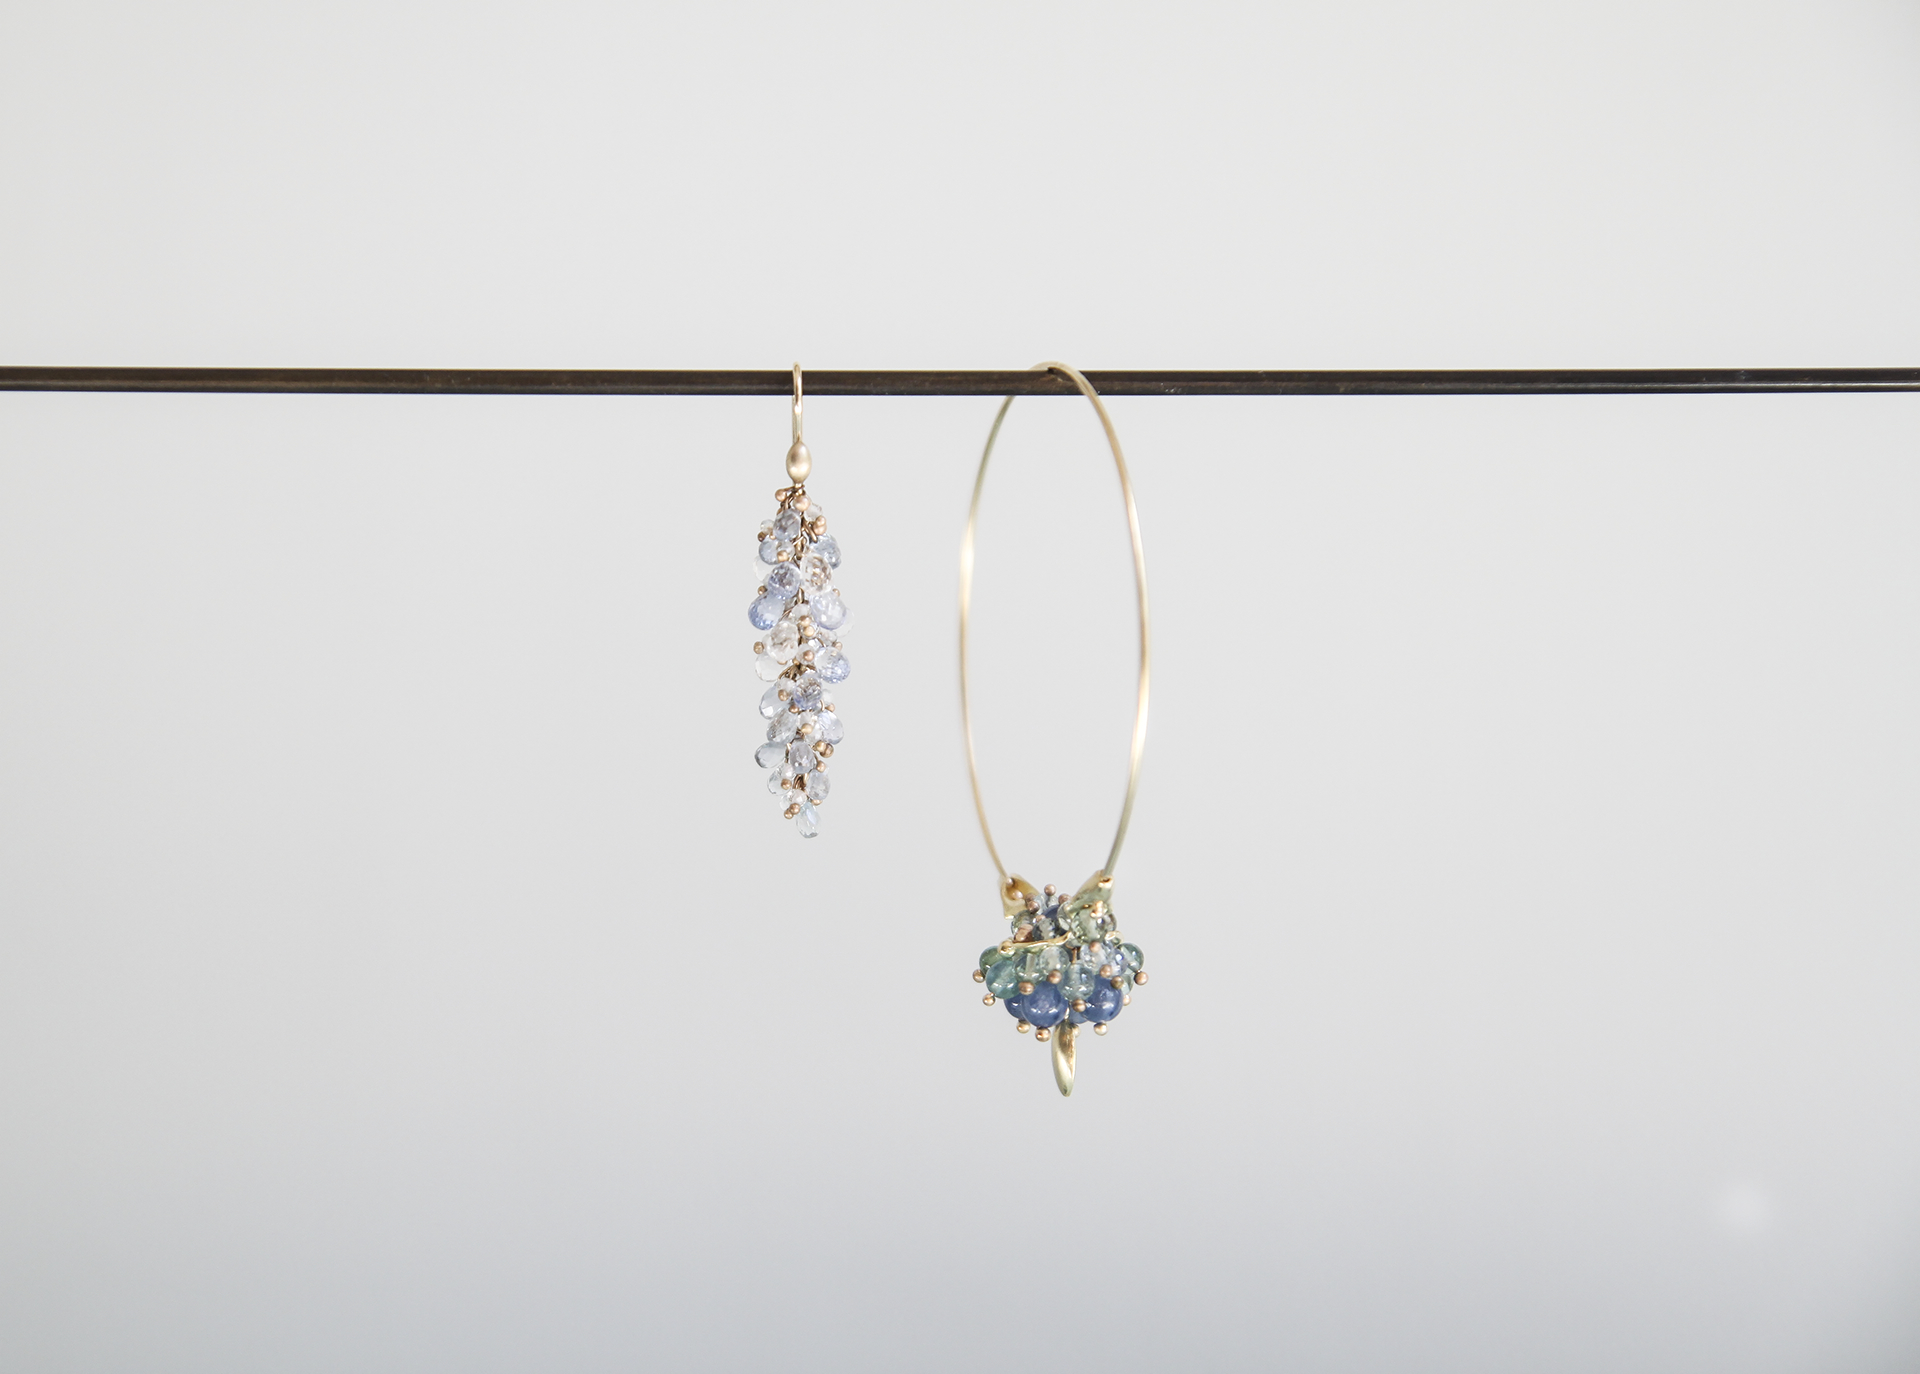 Blue Sapphire and Keshi Pearl Pussywillow Earrings, Medium 18ky Gold Hoop Cluster Earrings with Kyanite, Blue Sapphires, and Aquamarine